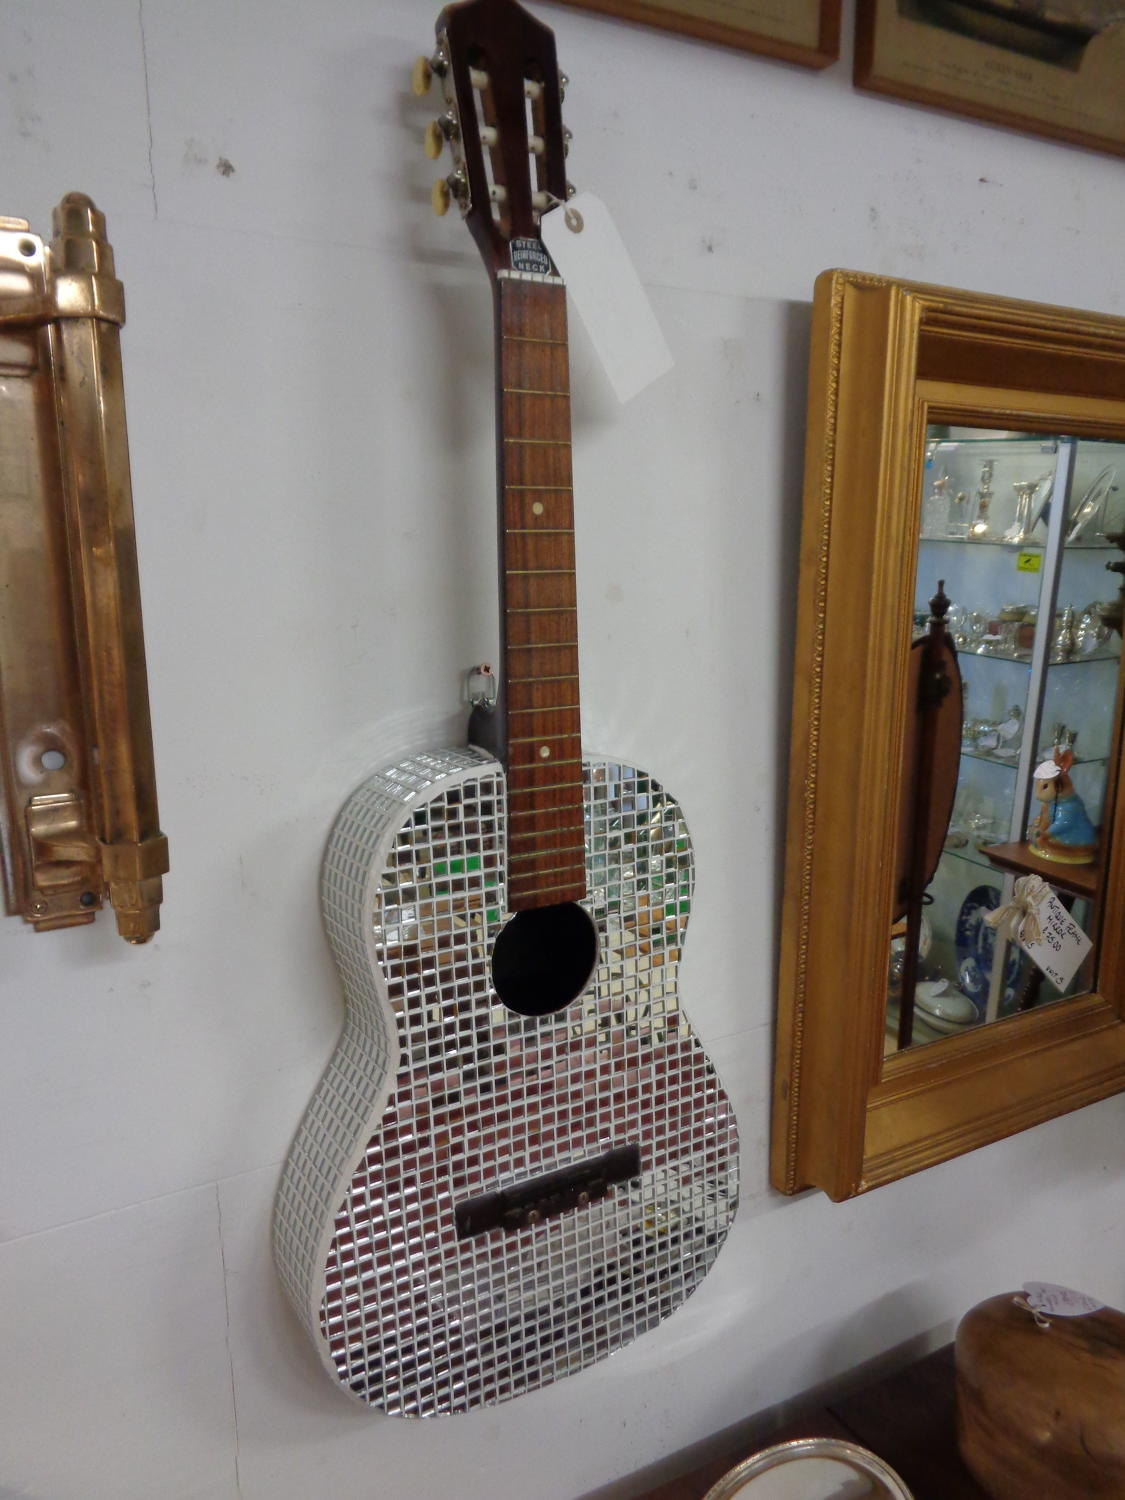 Bespoke Handmade Mirrored Guitar